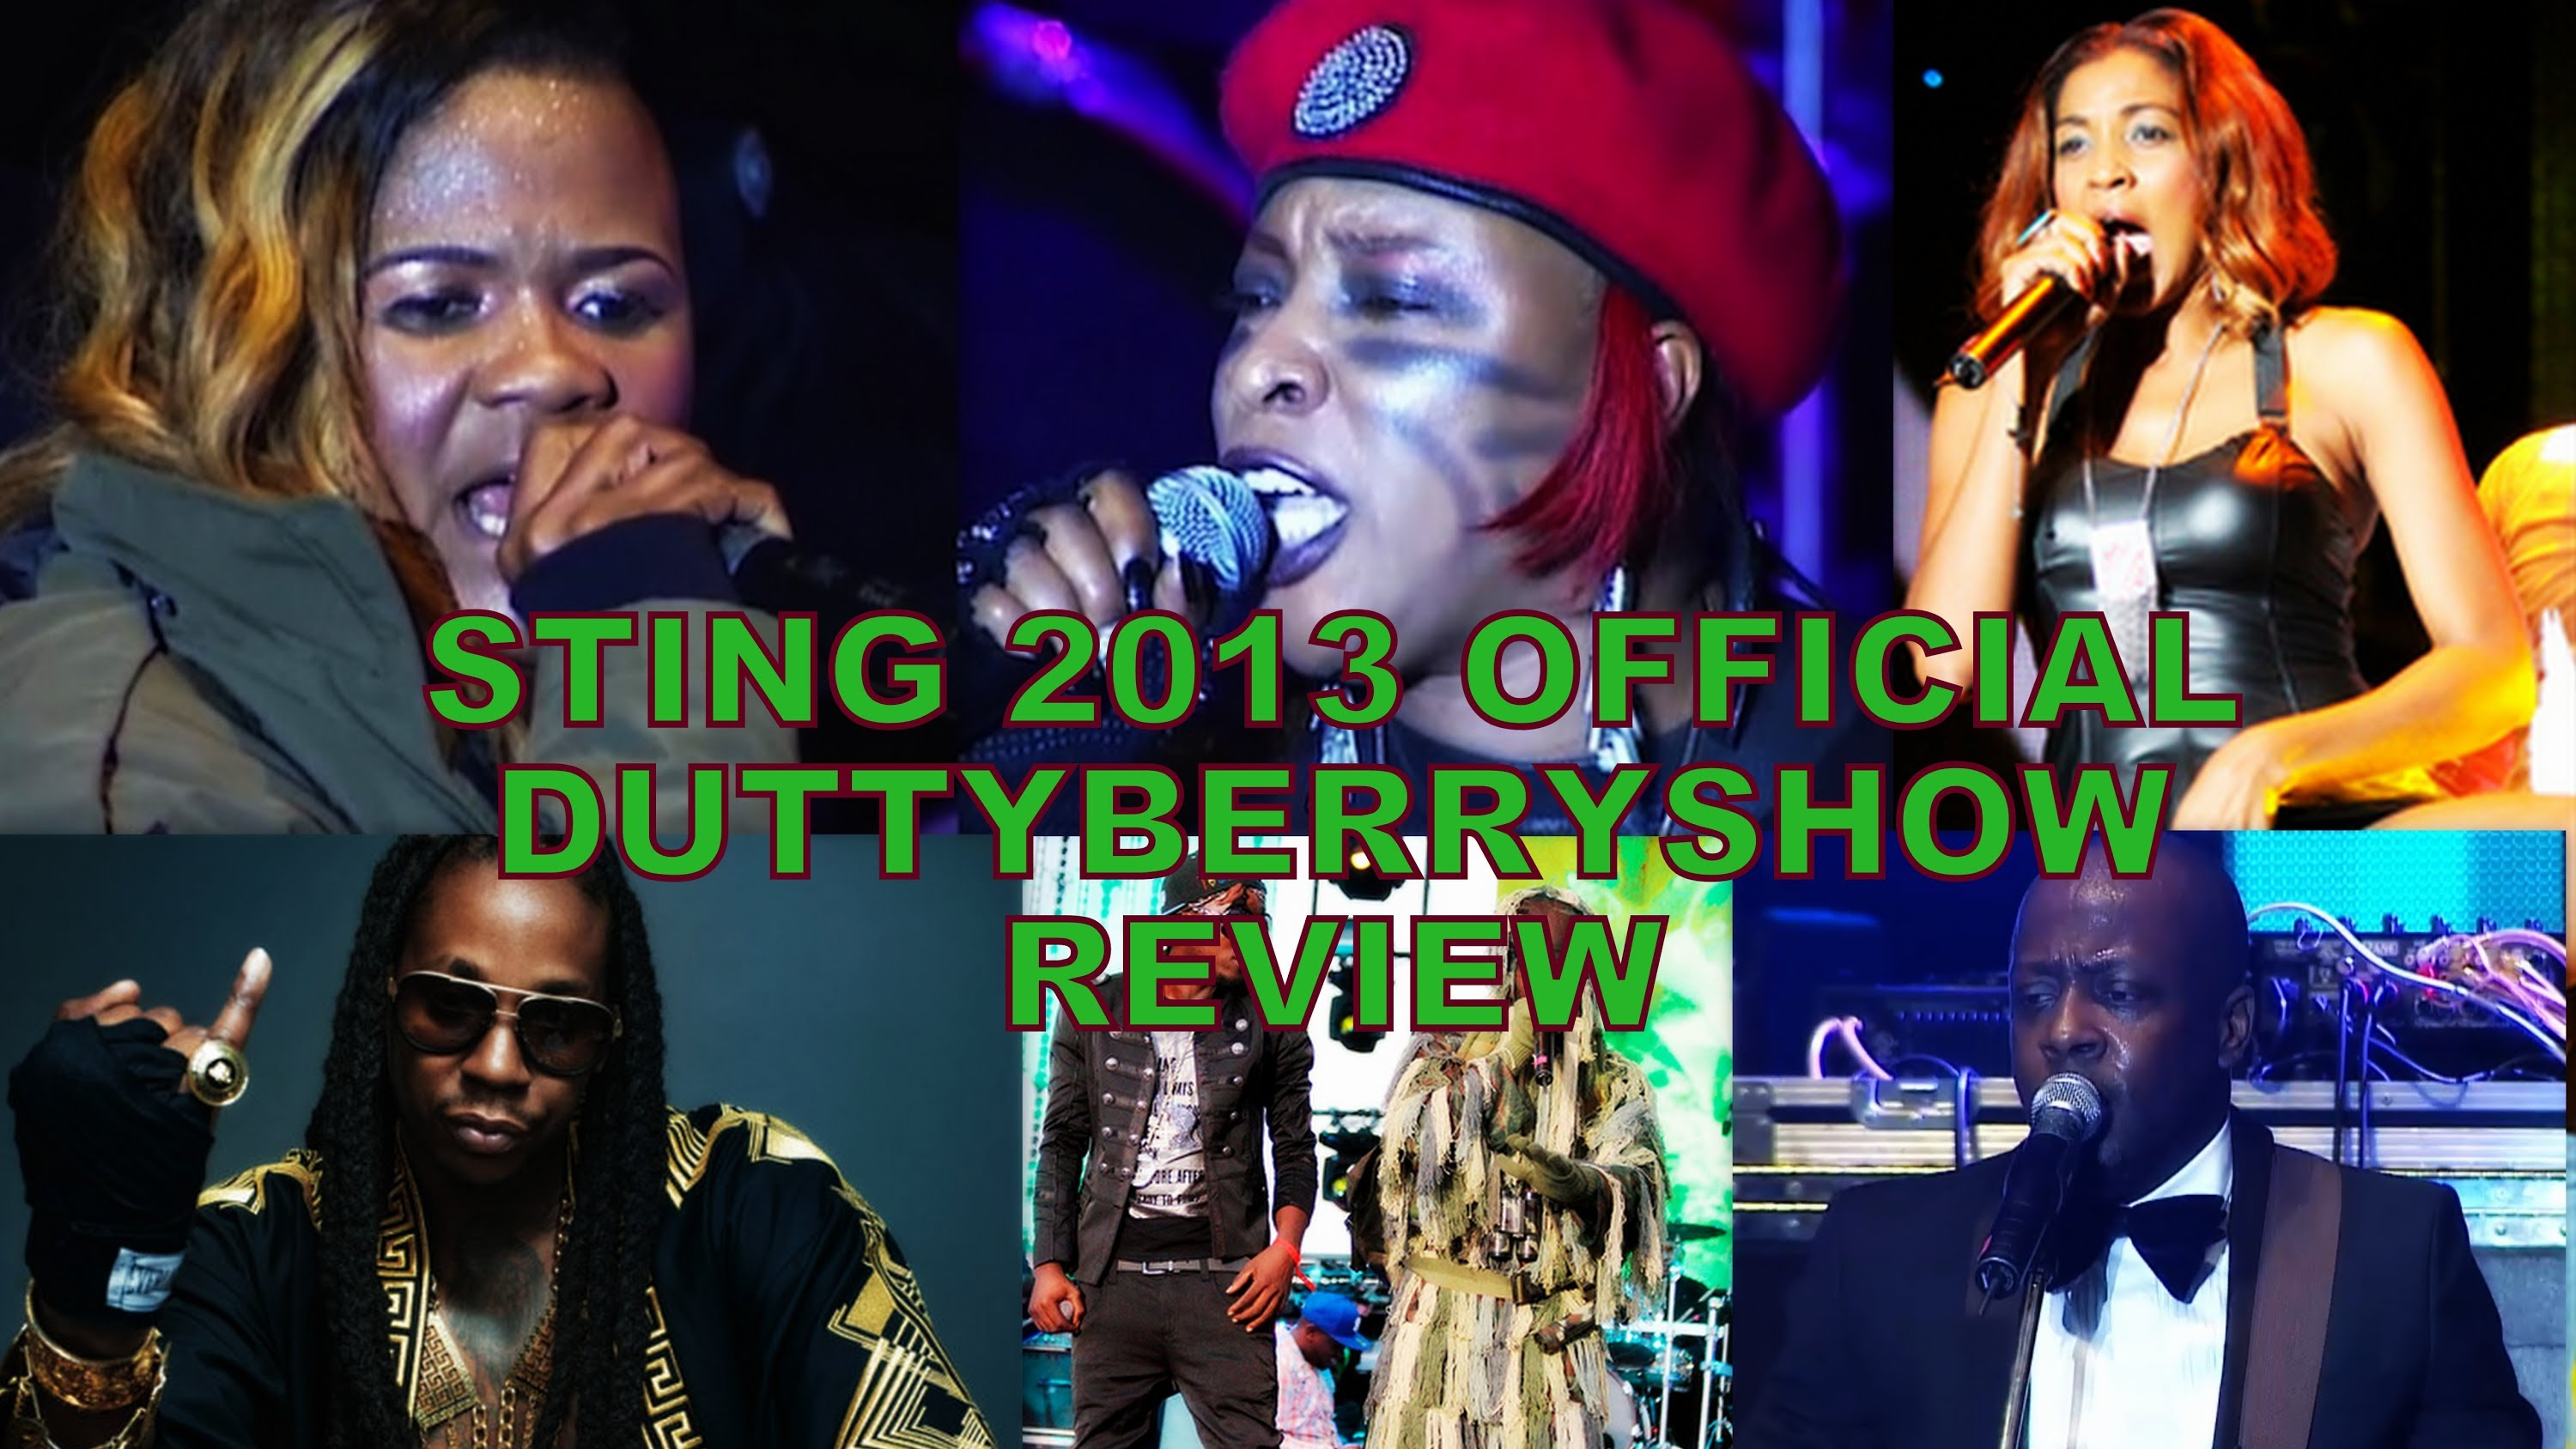 DuttyberryShow - Sting 2013 Review [1/8/2014]